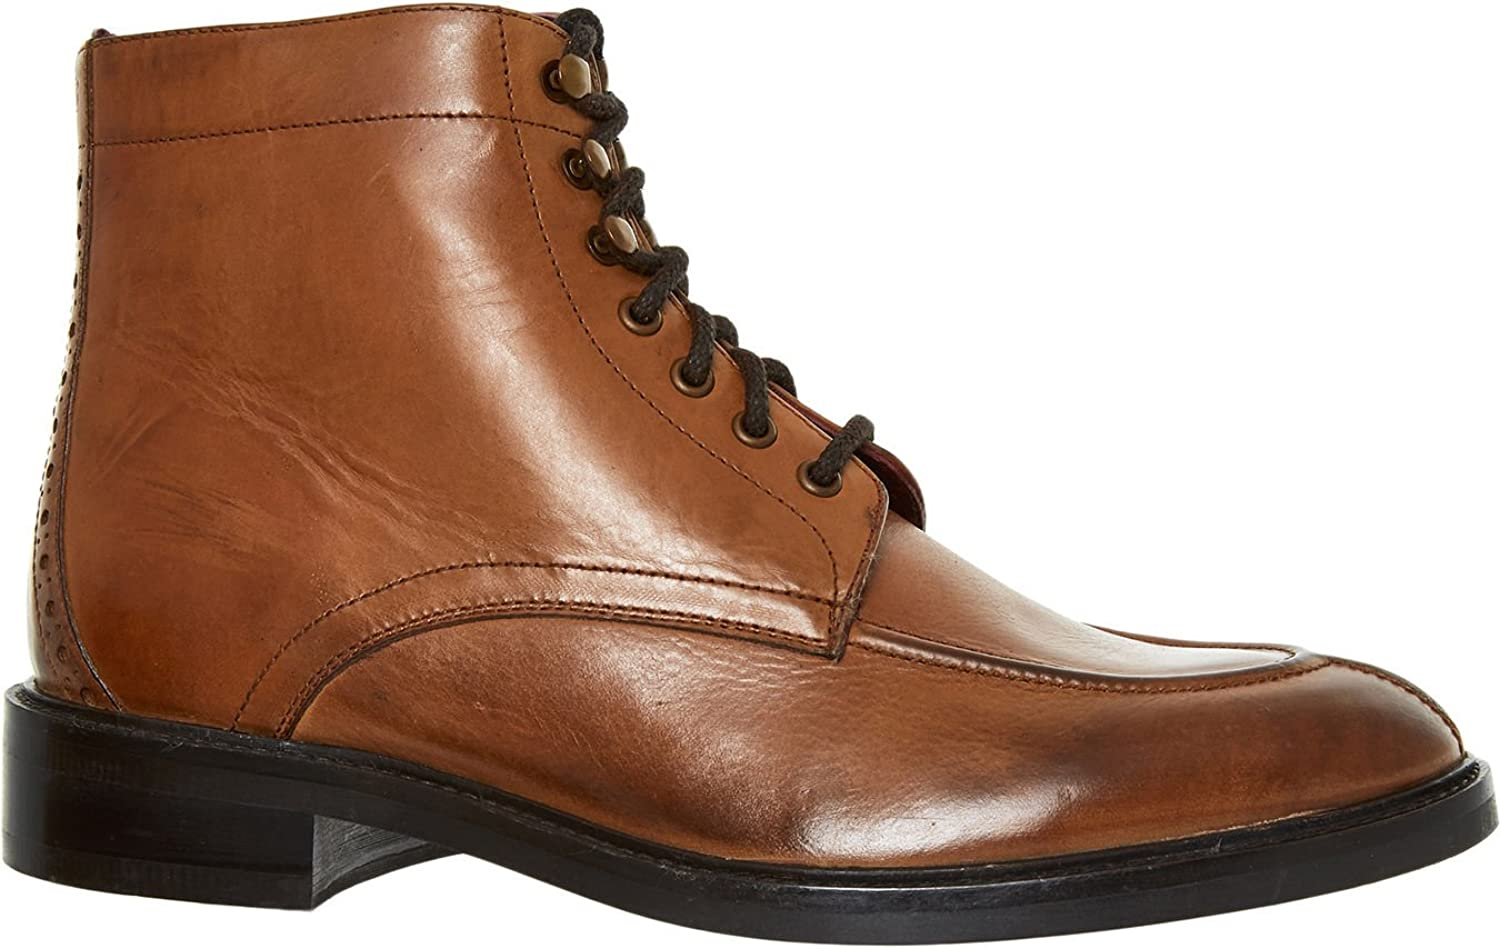 London Brogues Men's Oxford Brown Leather Boots